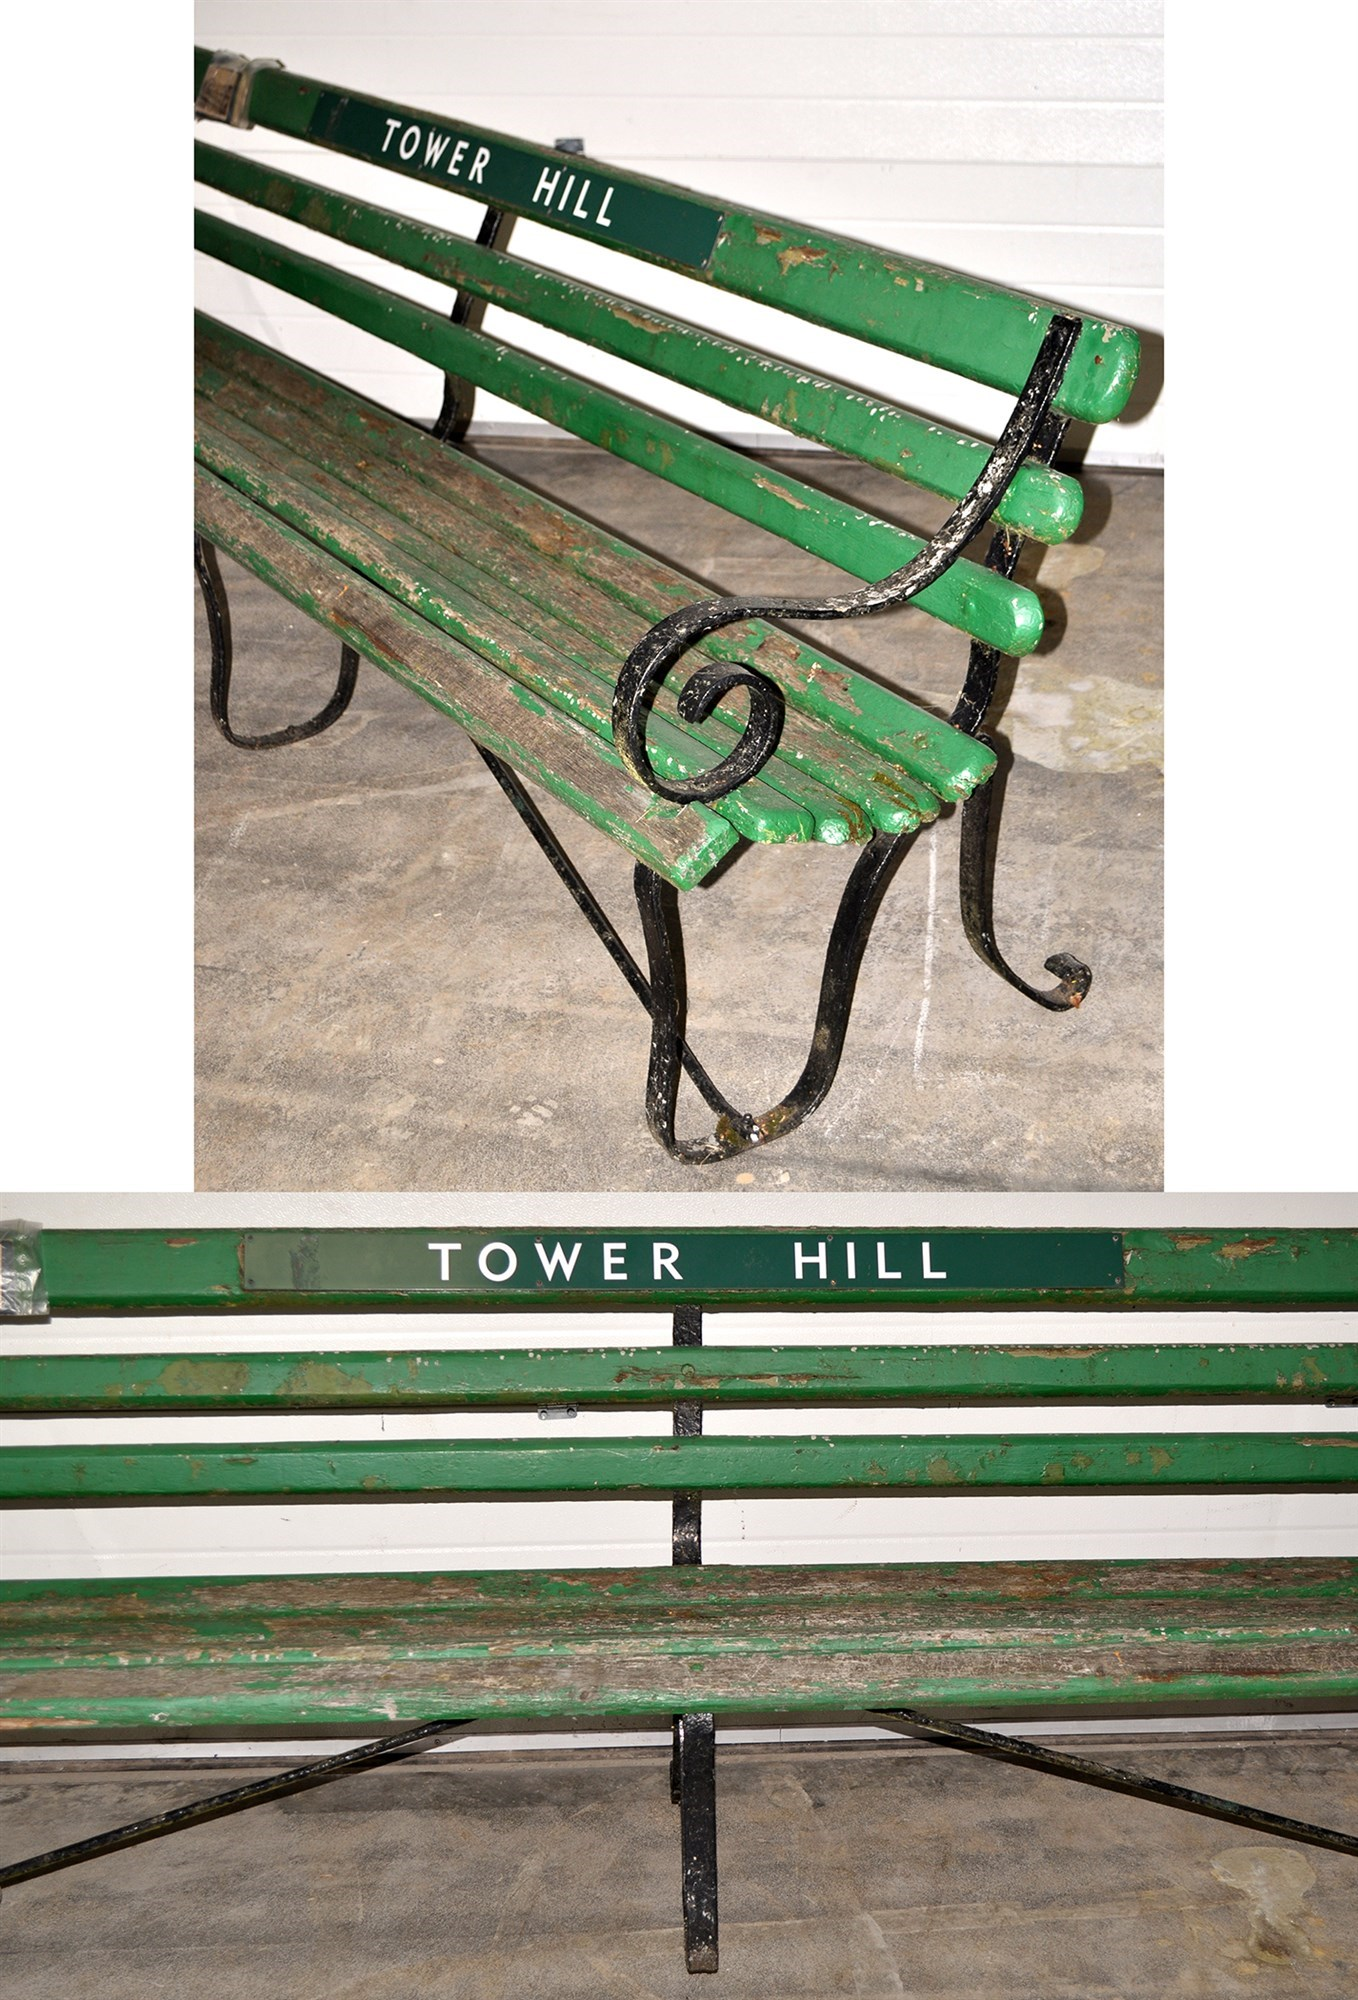 A Southern Railways platform bench for the Tower Hill Station, Devon,